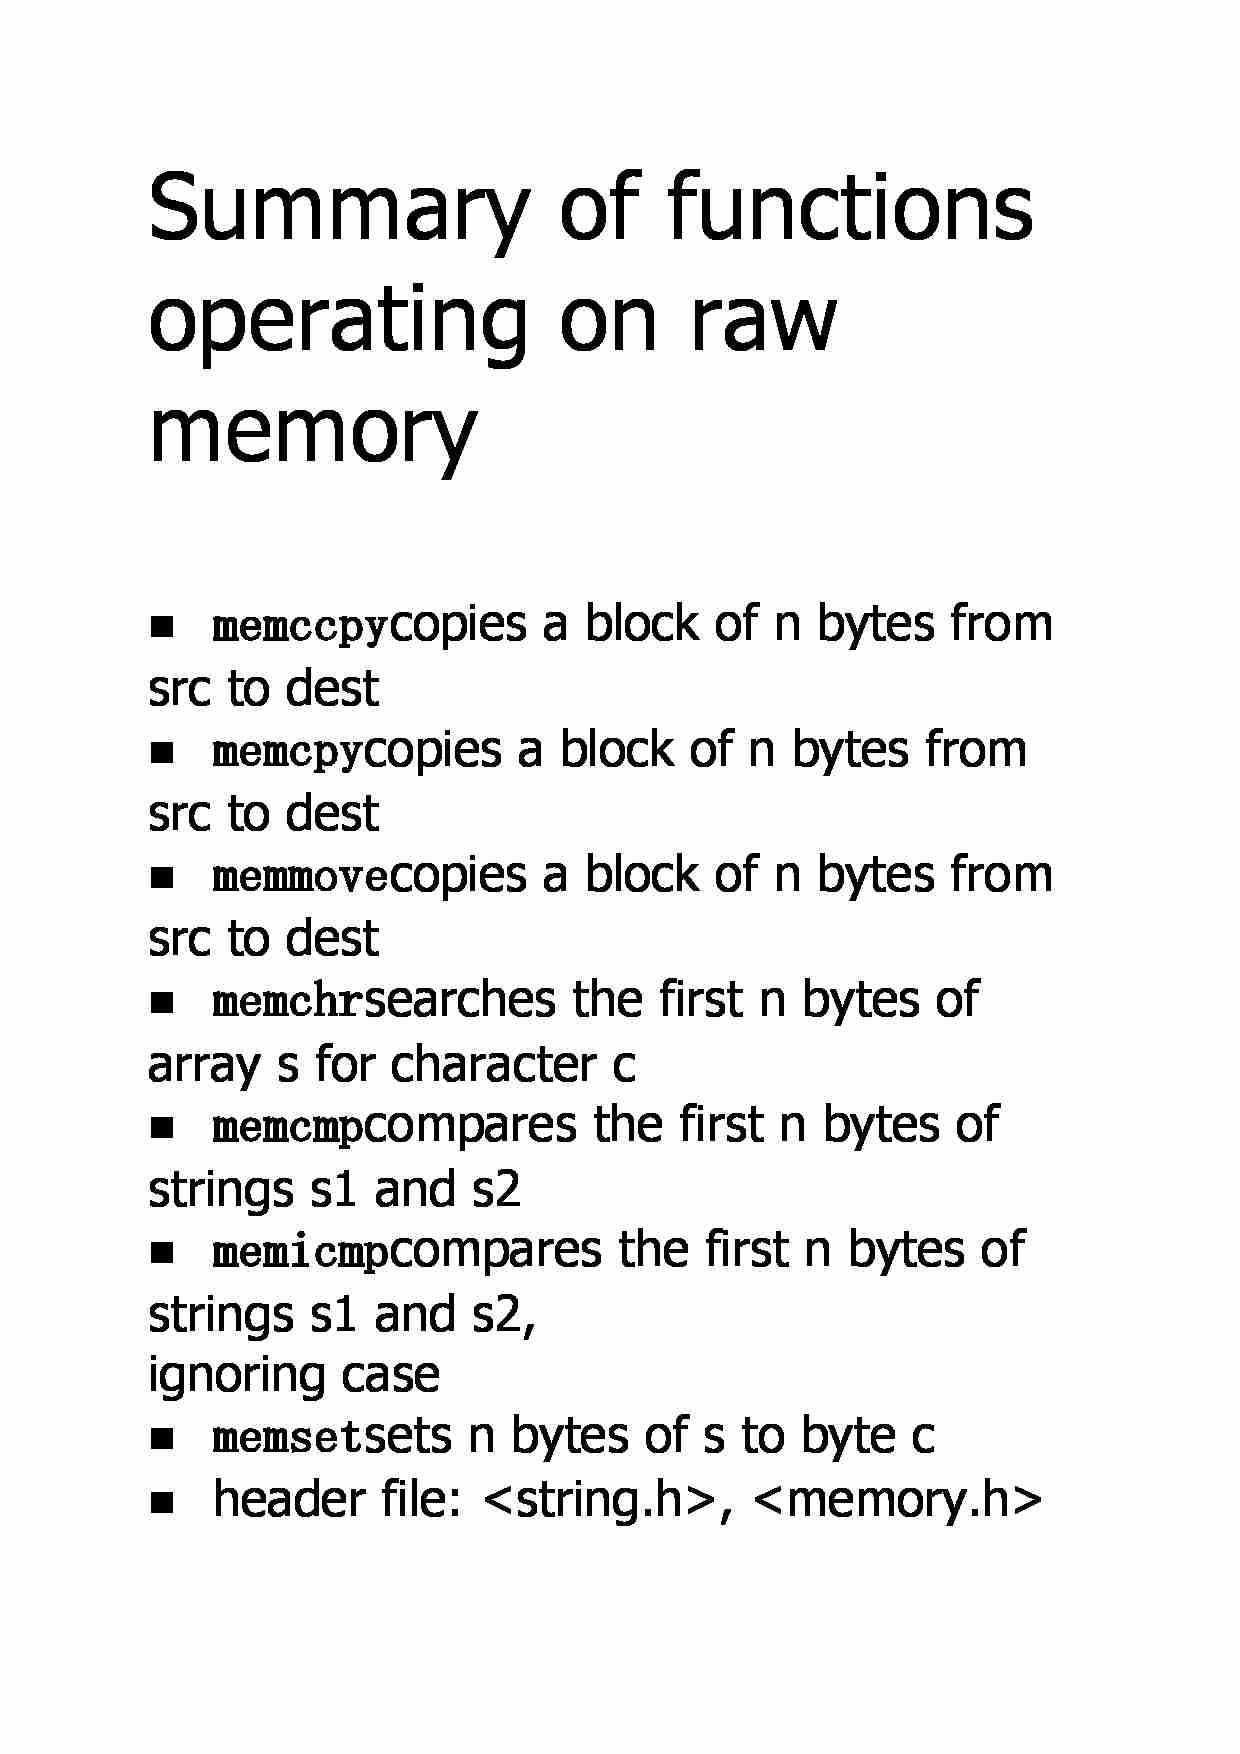 Summary of functions operating on raw memory - strona 1